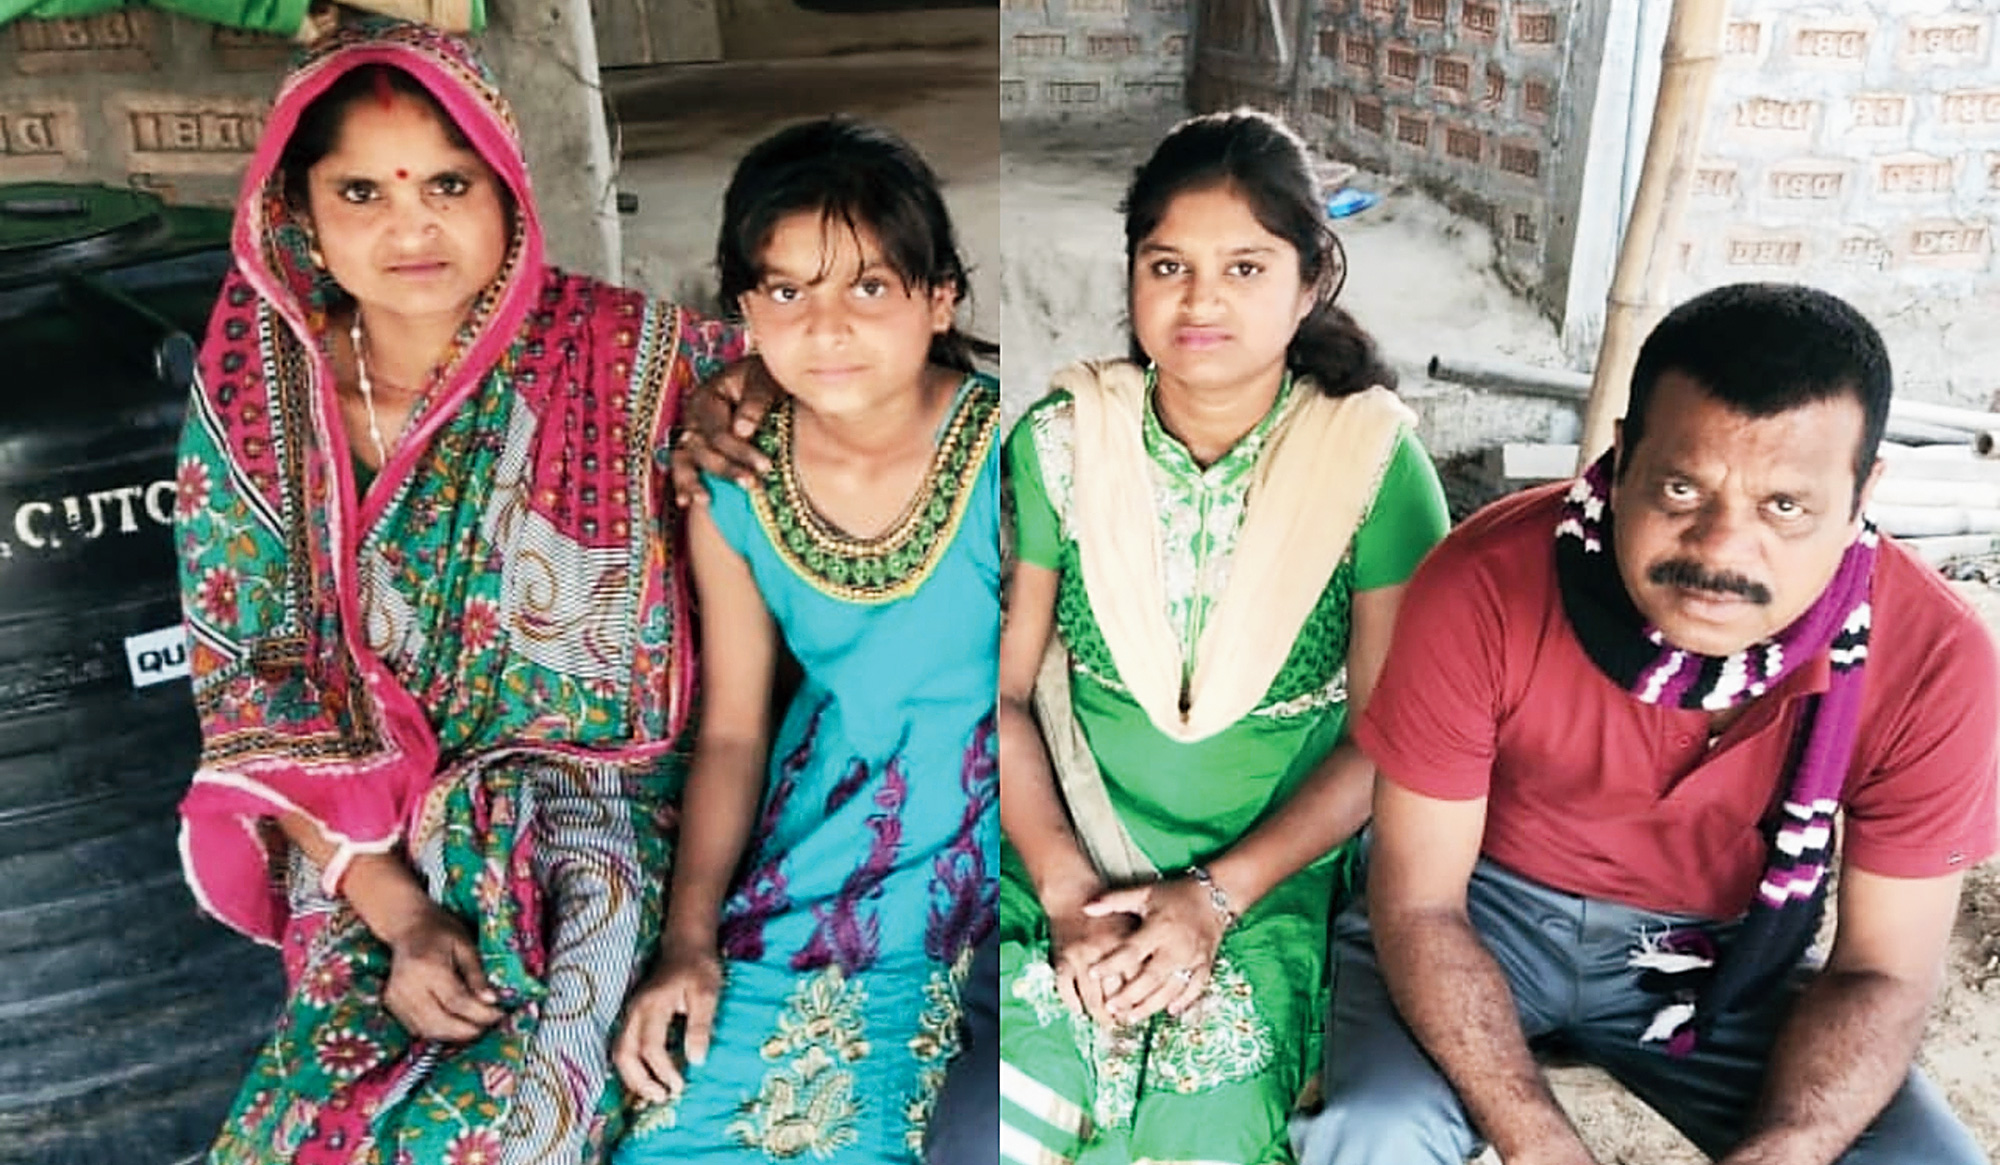 Dilip and Rumani Biswas with their daughters.